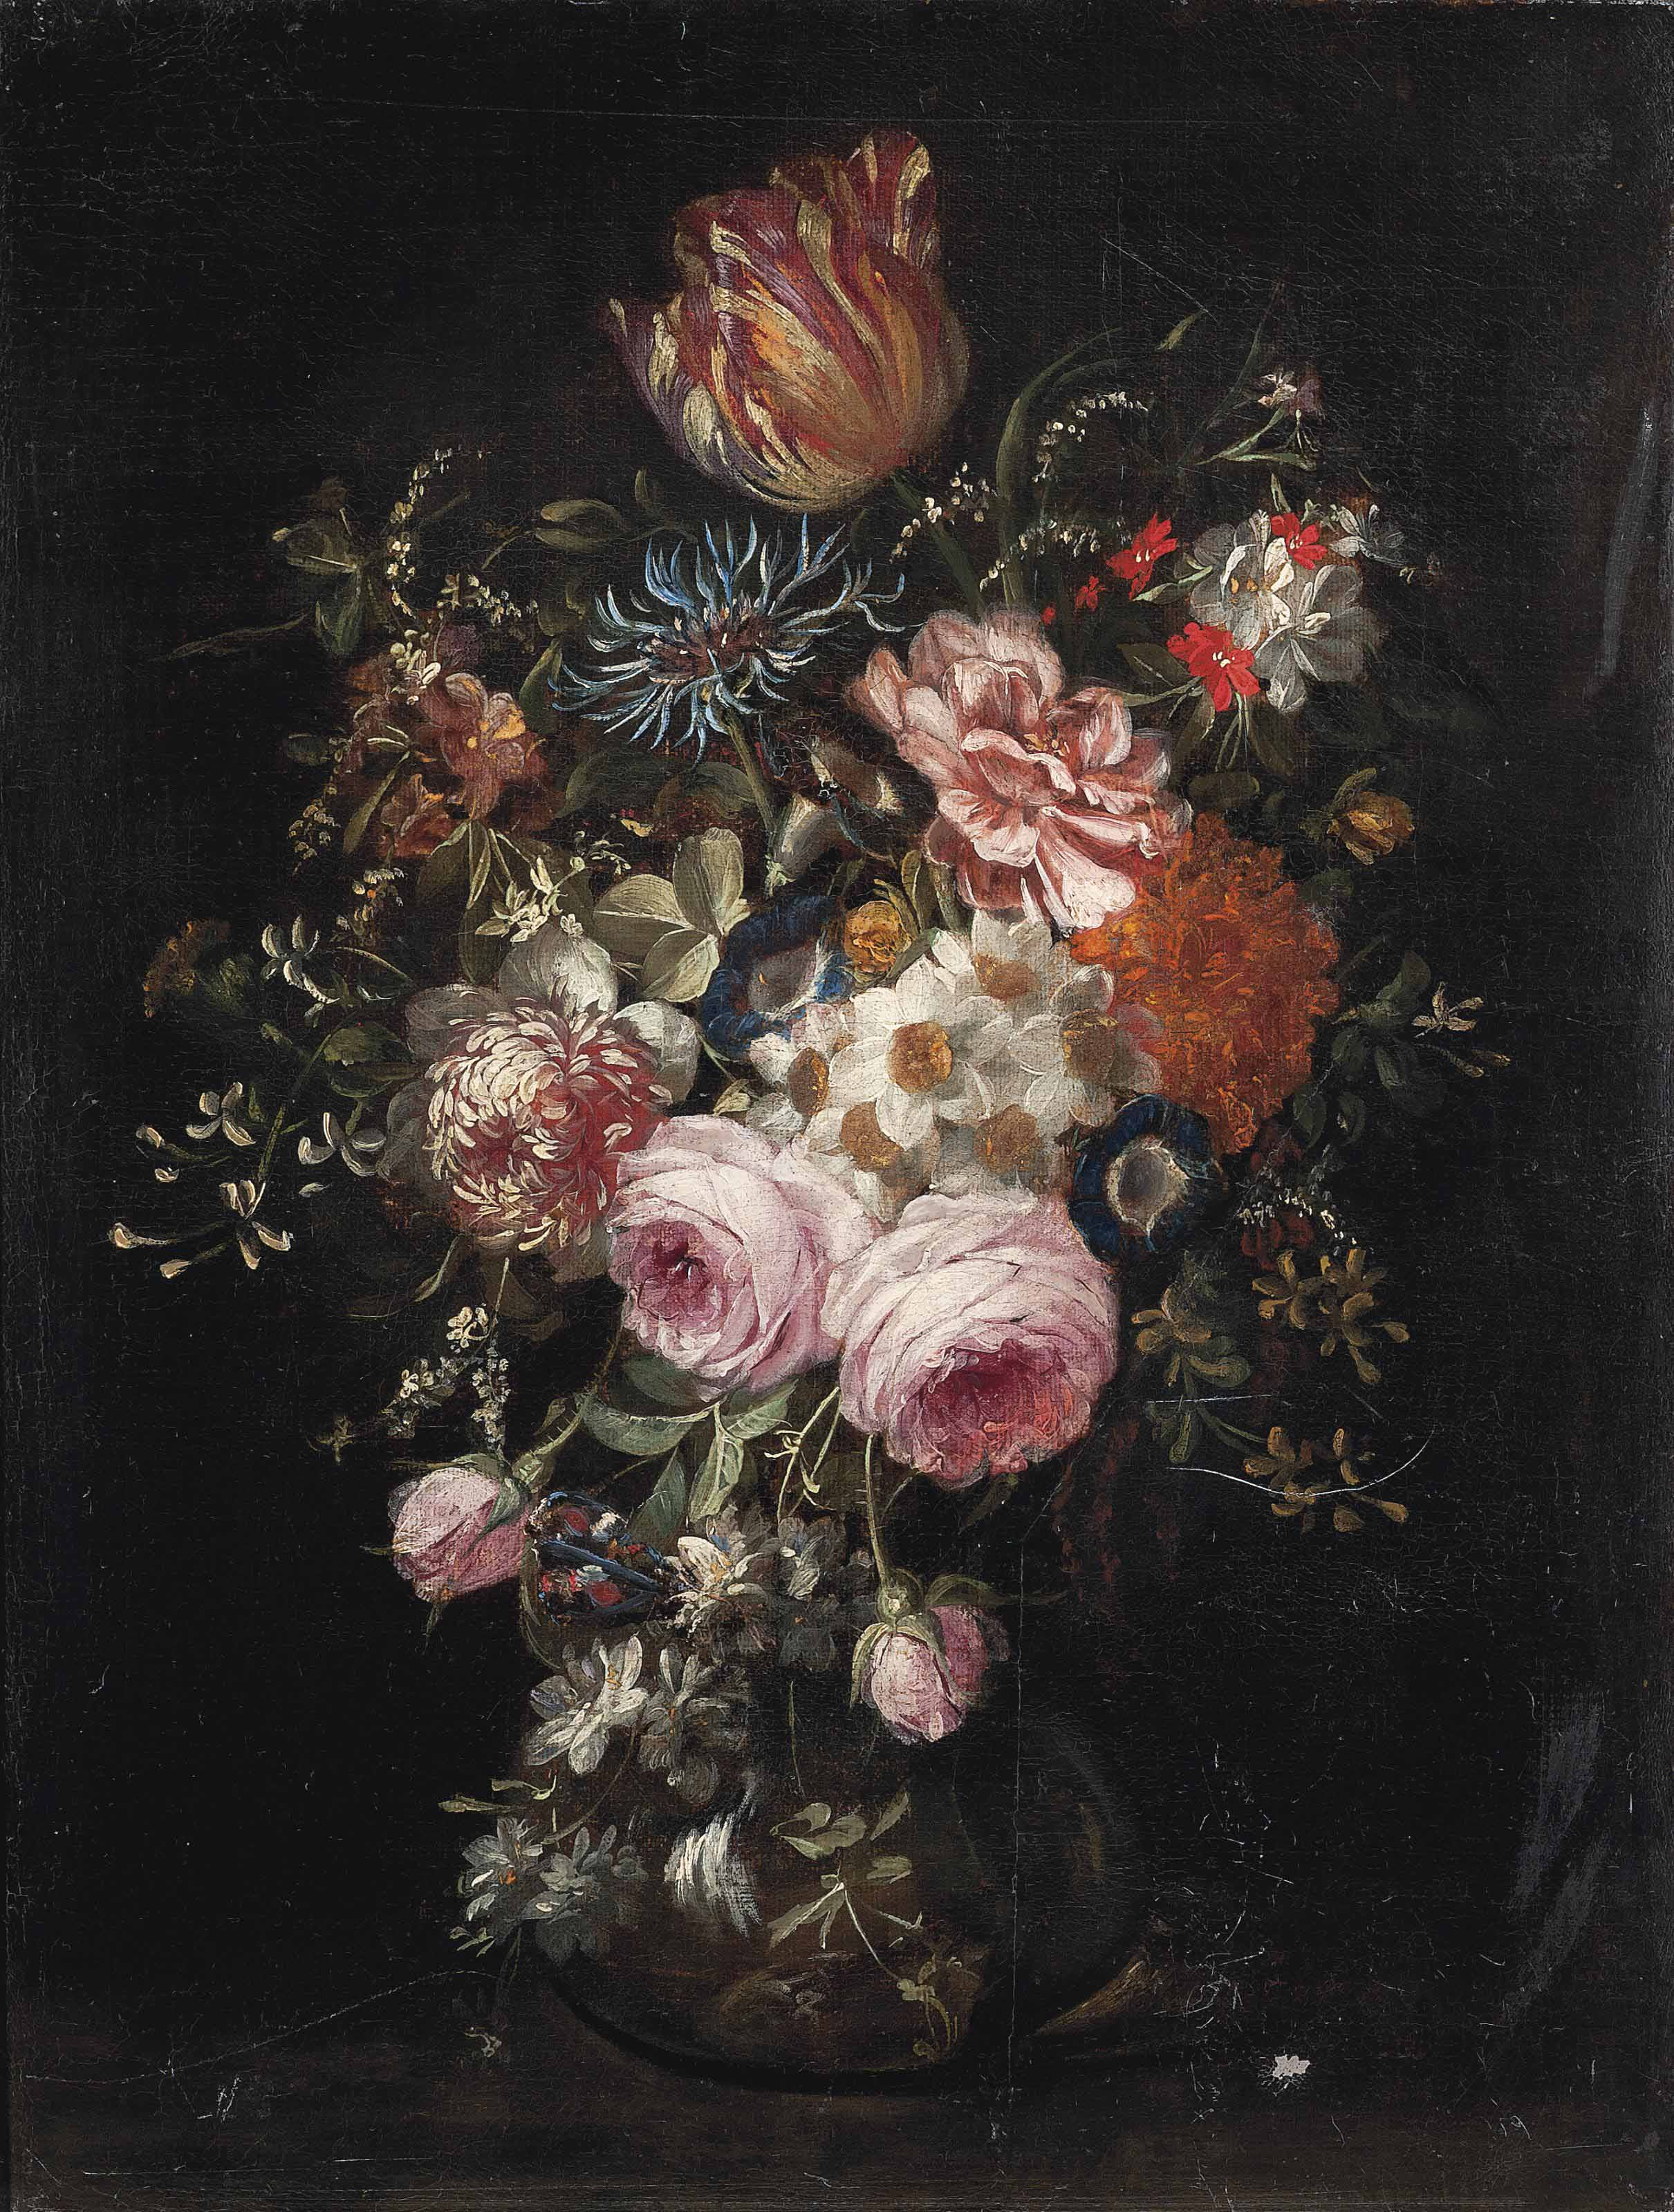 Roses, carnations, lilies, tulips, morning glory and other flowers in a glass vase